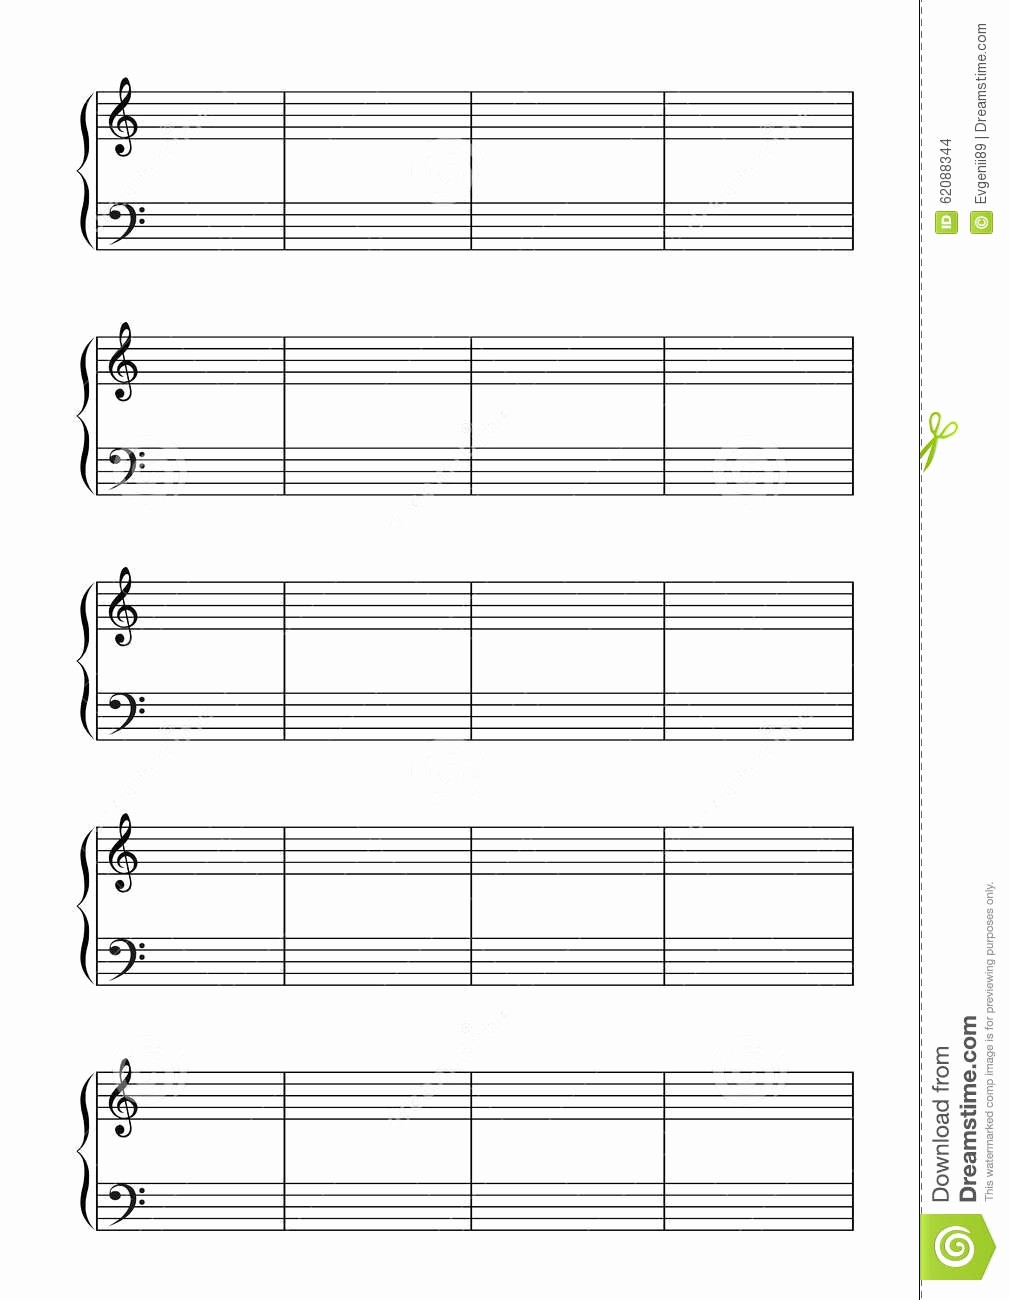 Blank Sheet Music Bass Clef Lovely Music Note Stave with Treble and Bass Clefs A4 Stock